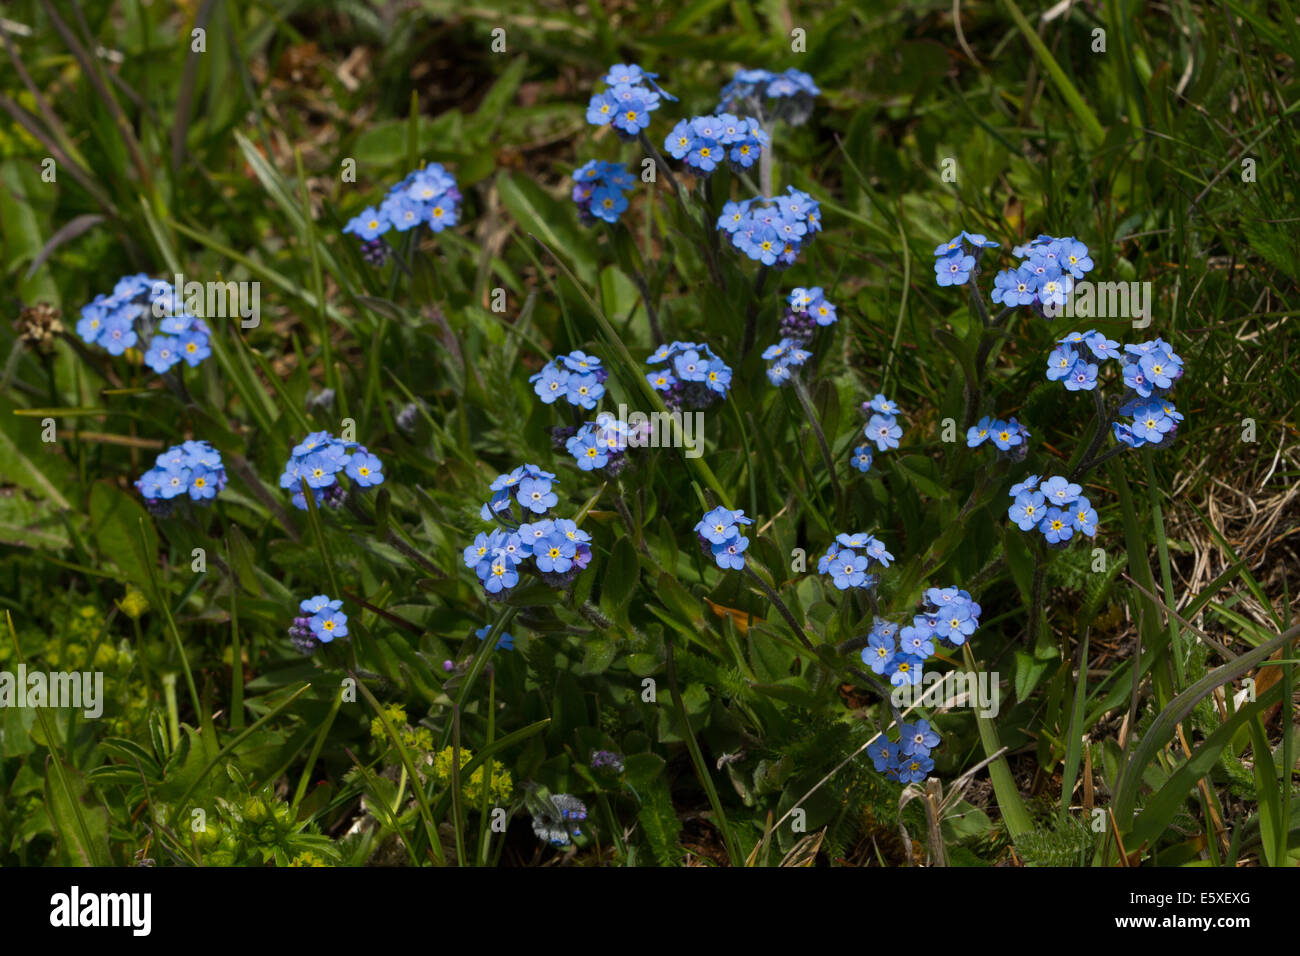 Alpine Forget-me-not (Myosotis alpestris) Stock Photo